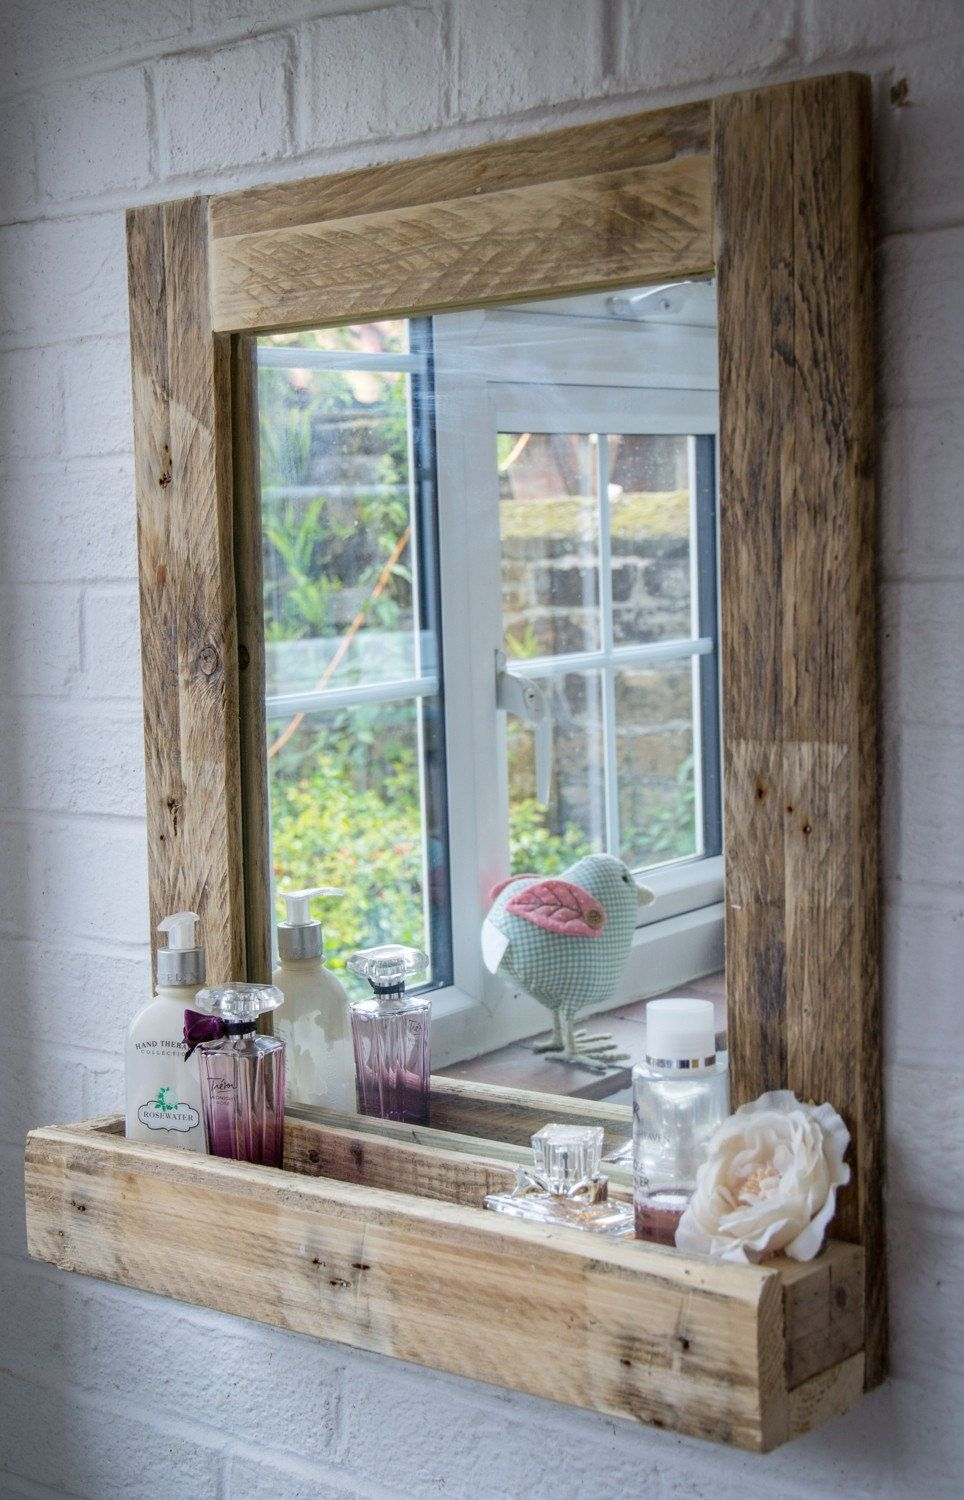 20 Gorgeous Bathroom Vanity Decor Inspiration You Should Try at Home ...